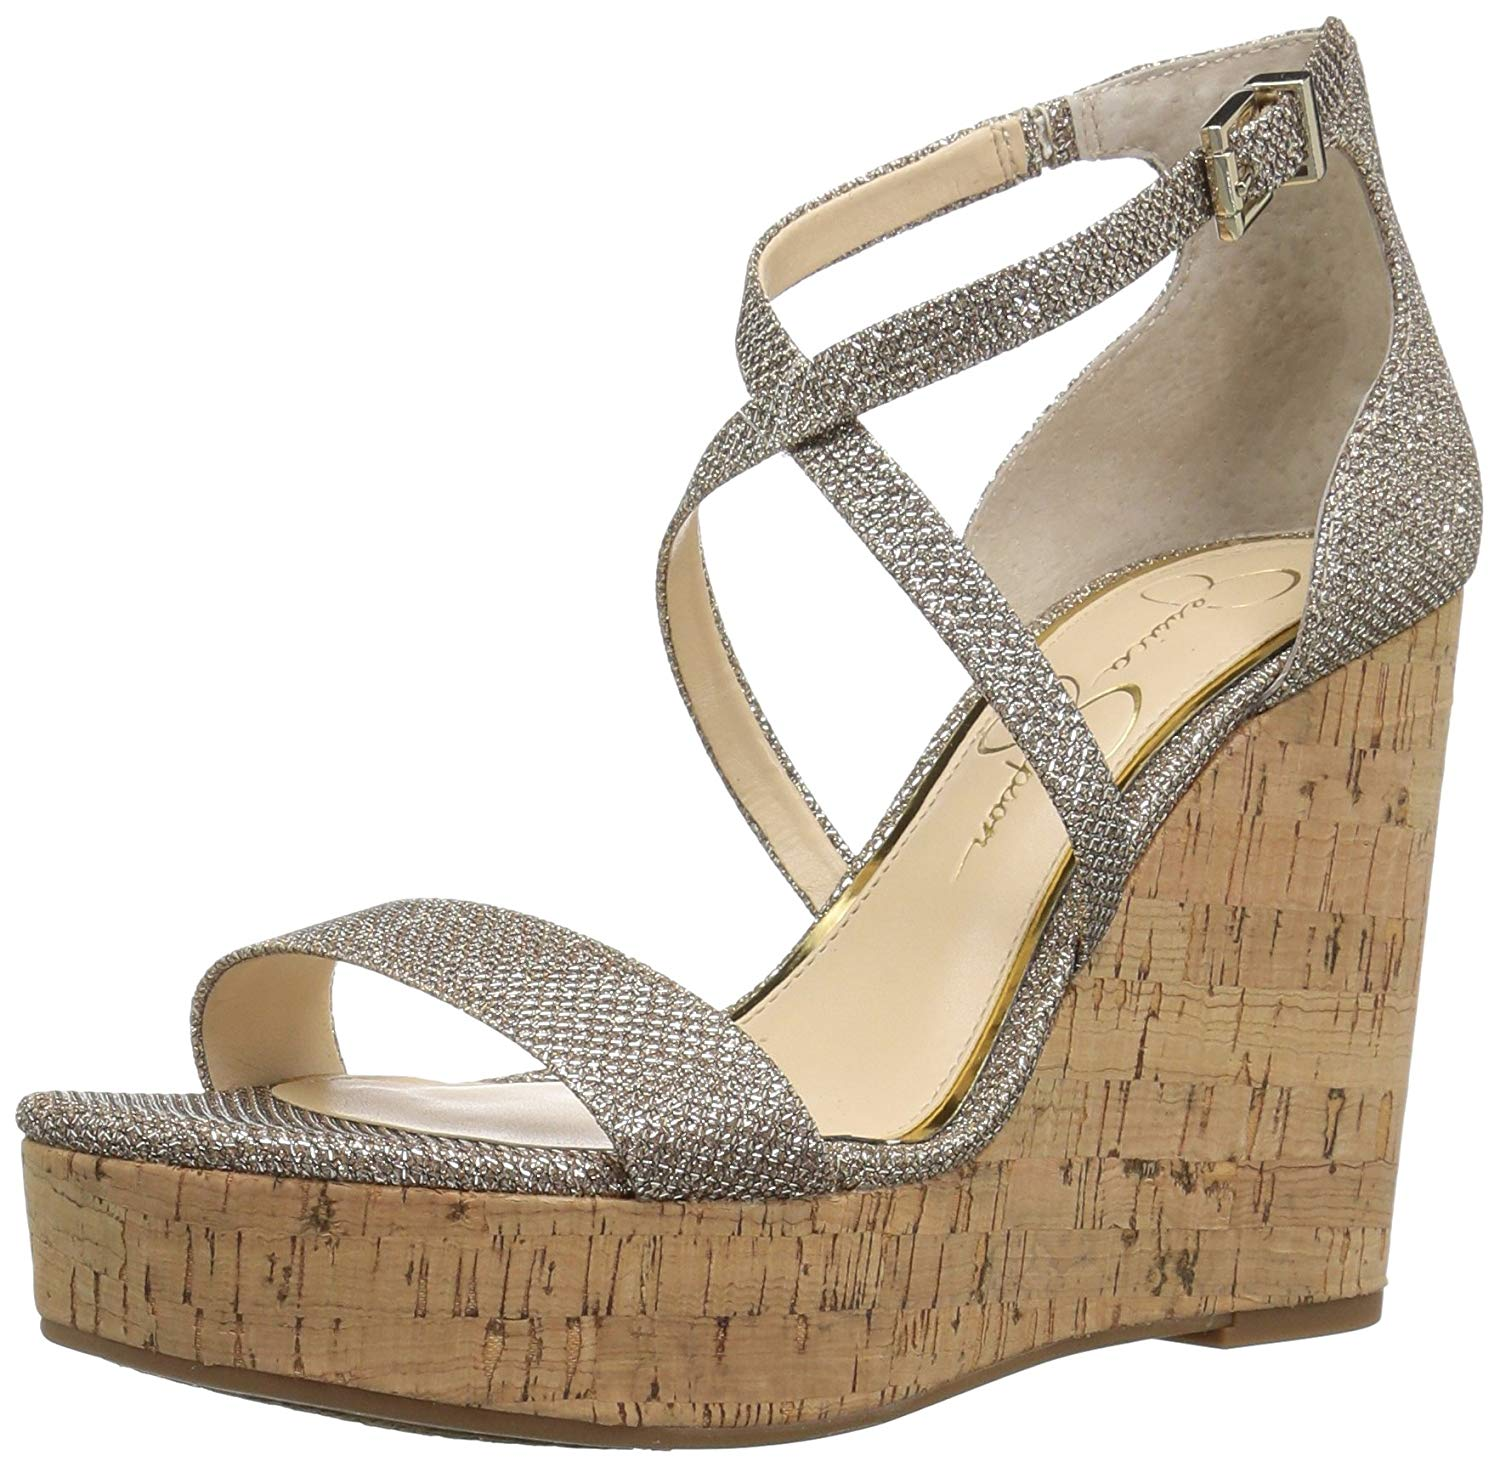 0fd4c933293 Jessica Simpson Womens Stassi Open Toe Special Occasion Ankle Strap Sandals